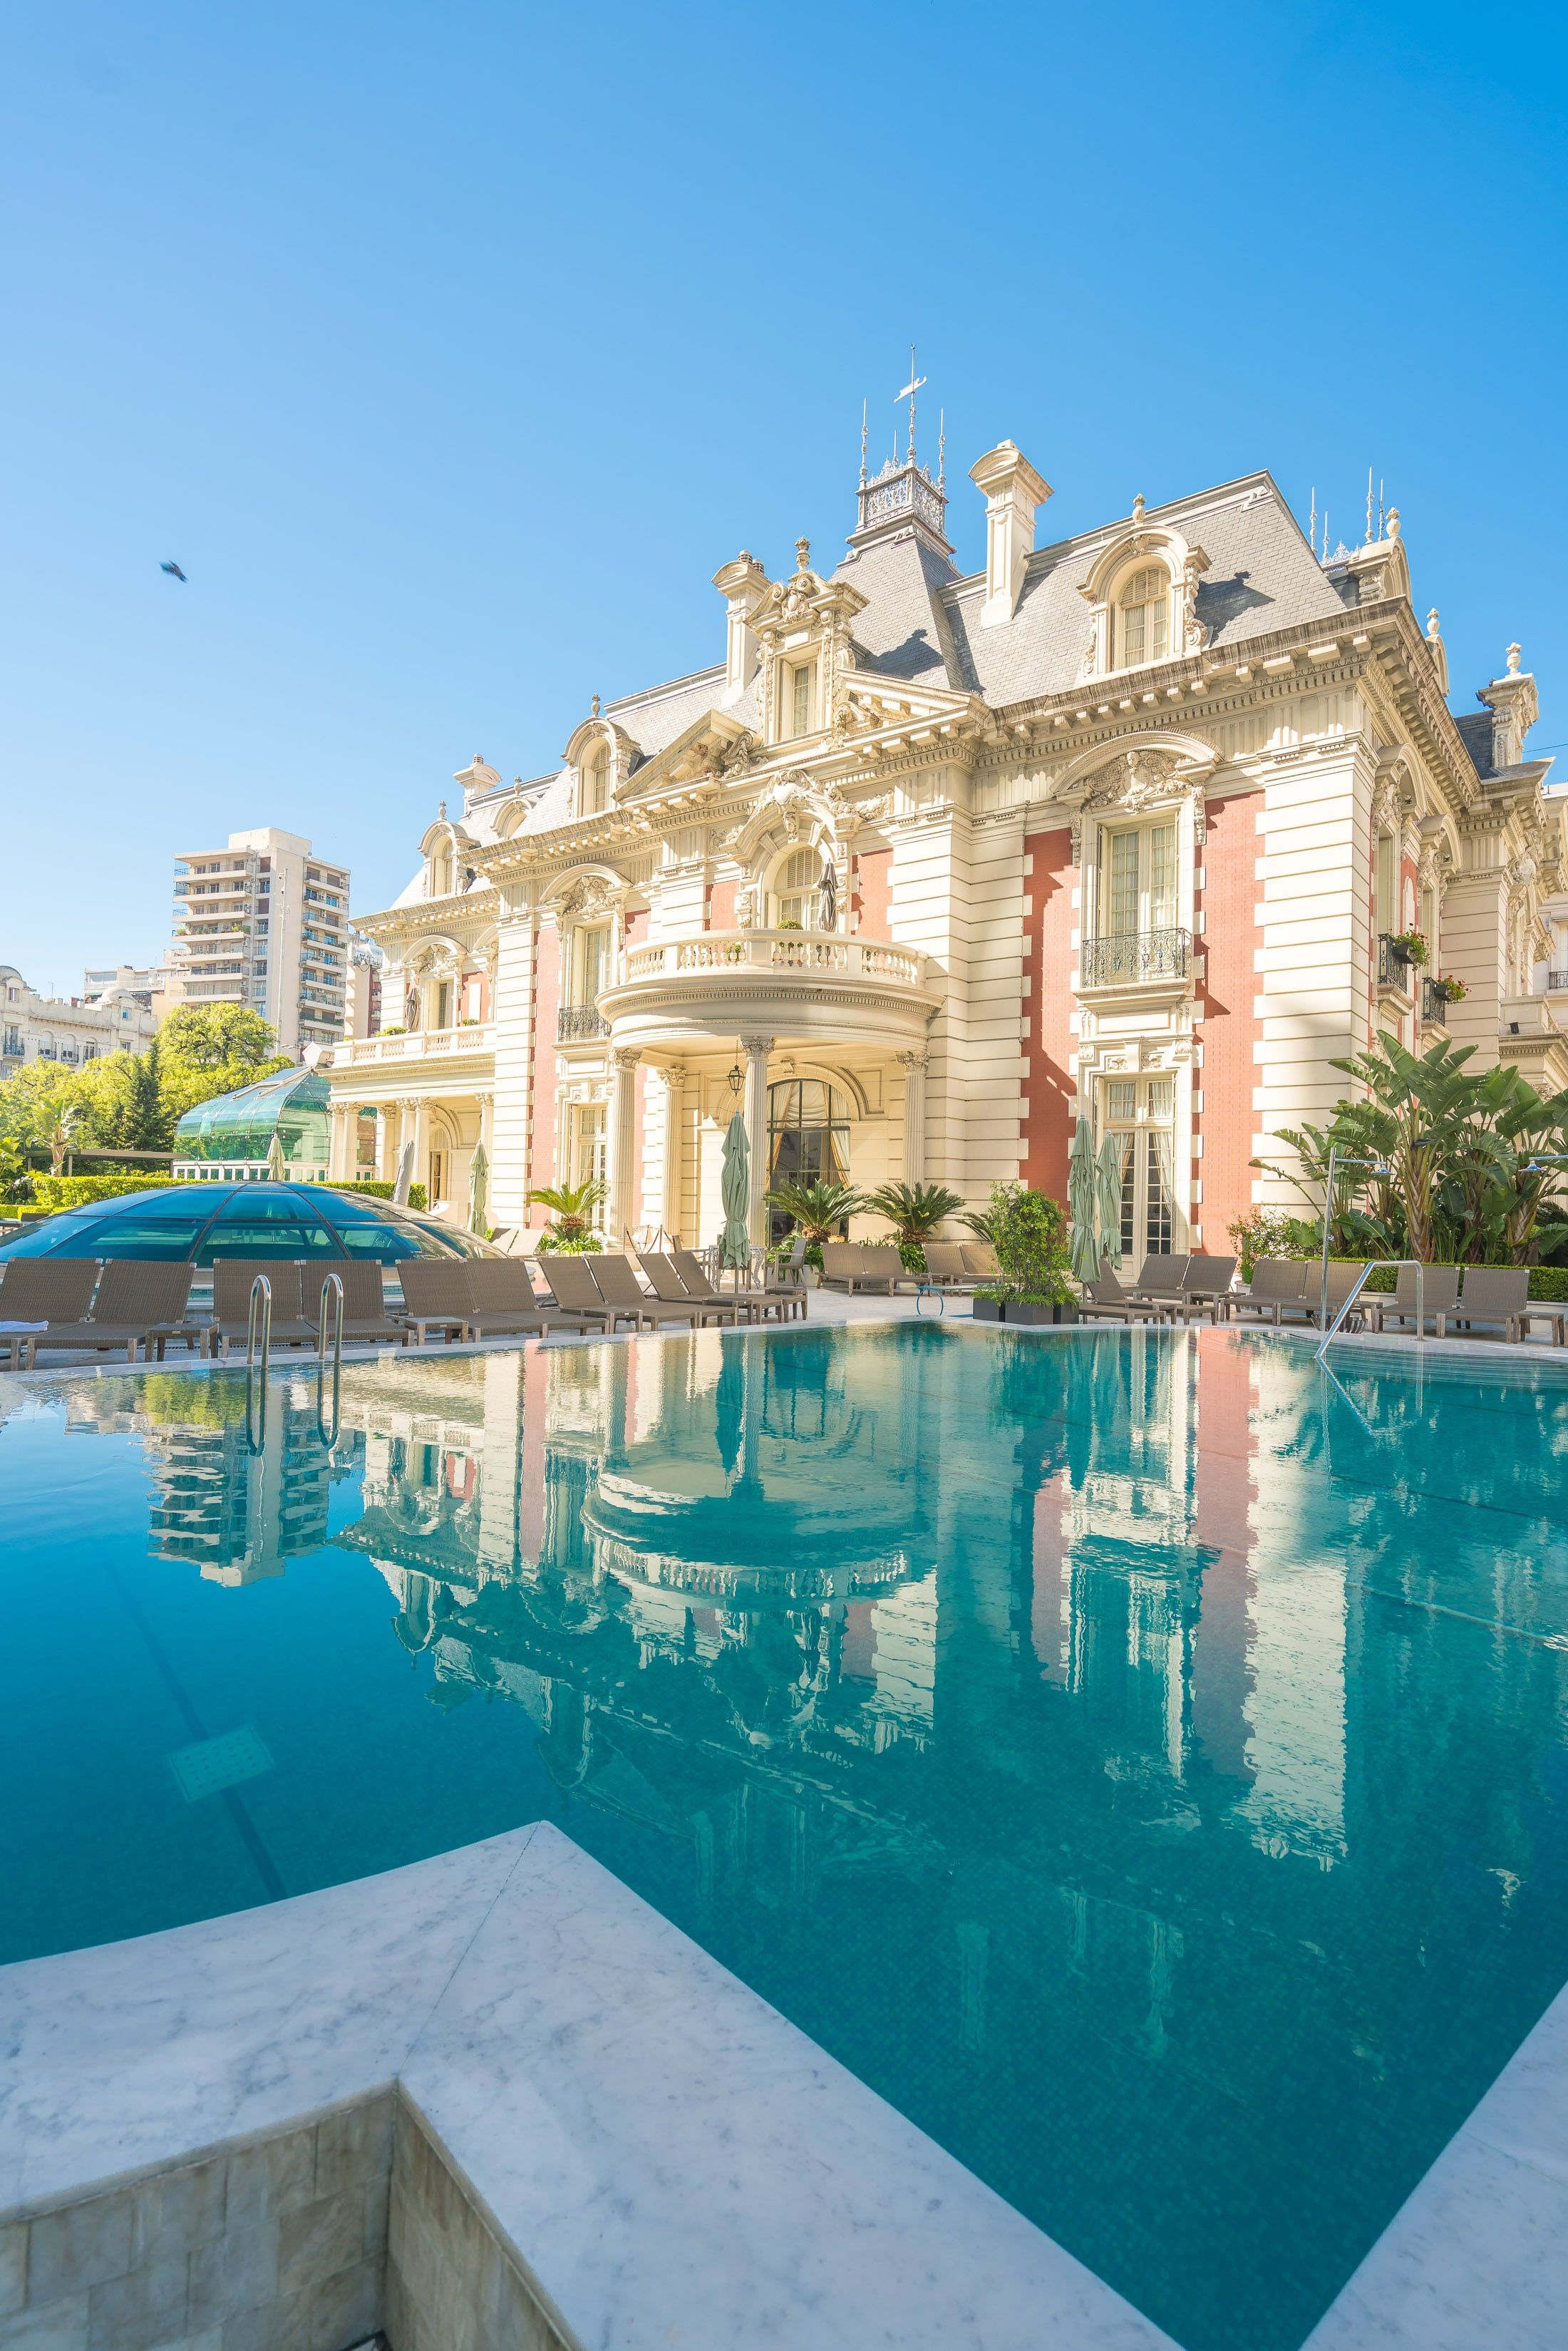 Four Seasons Hotel Buenos Aires In Argentina Has Luxury Suites In An  Adjacent Belle Époque Mansion Overlooking The Pool.